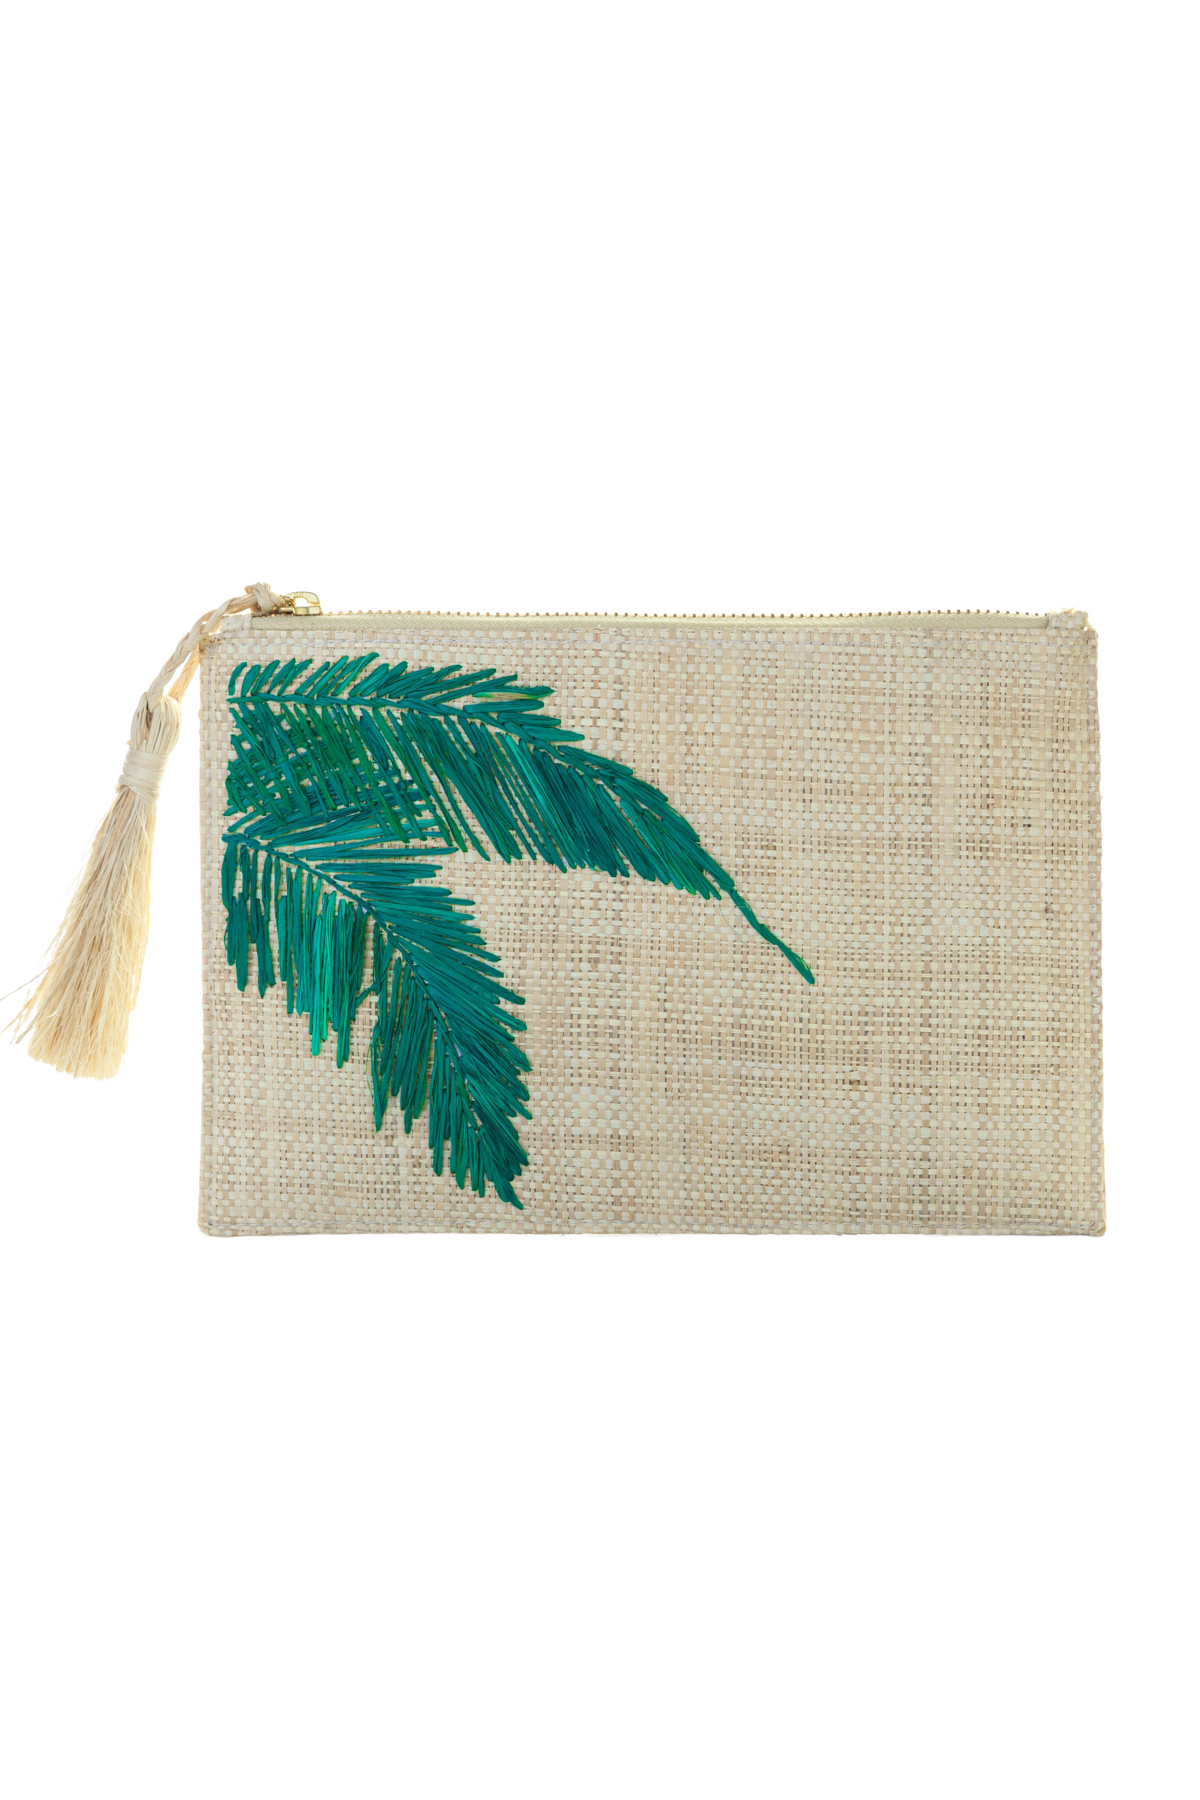 Aleja Embroidered Pouch - Natural 1